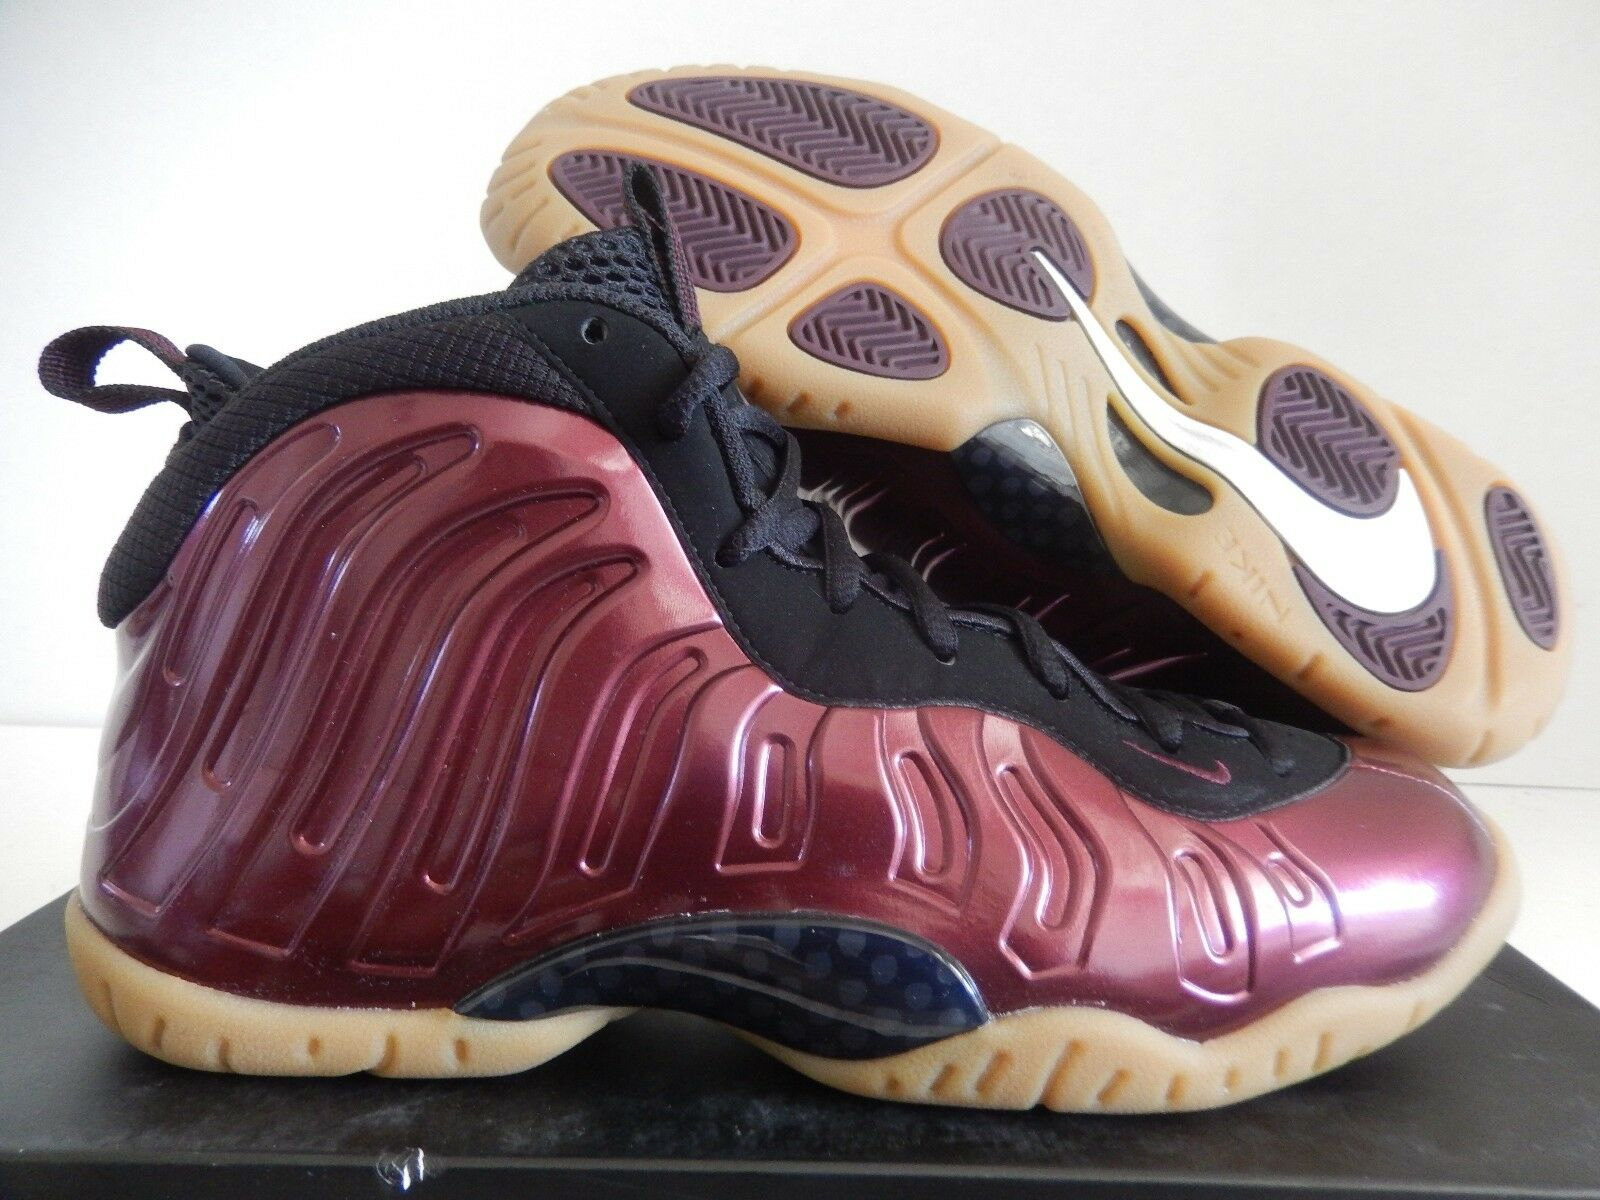 NIKE LITTLE POSITE ONE (GS) NIGHT MAROON-noir SZ 7Y -WMNS SZ 8.5 [644791-600]